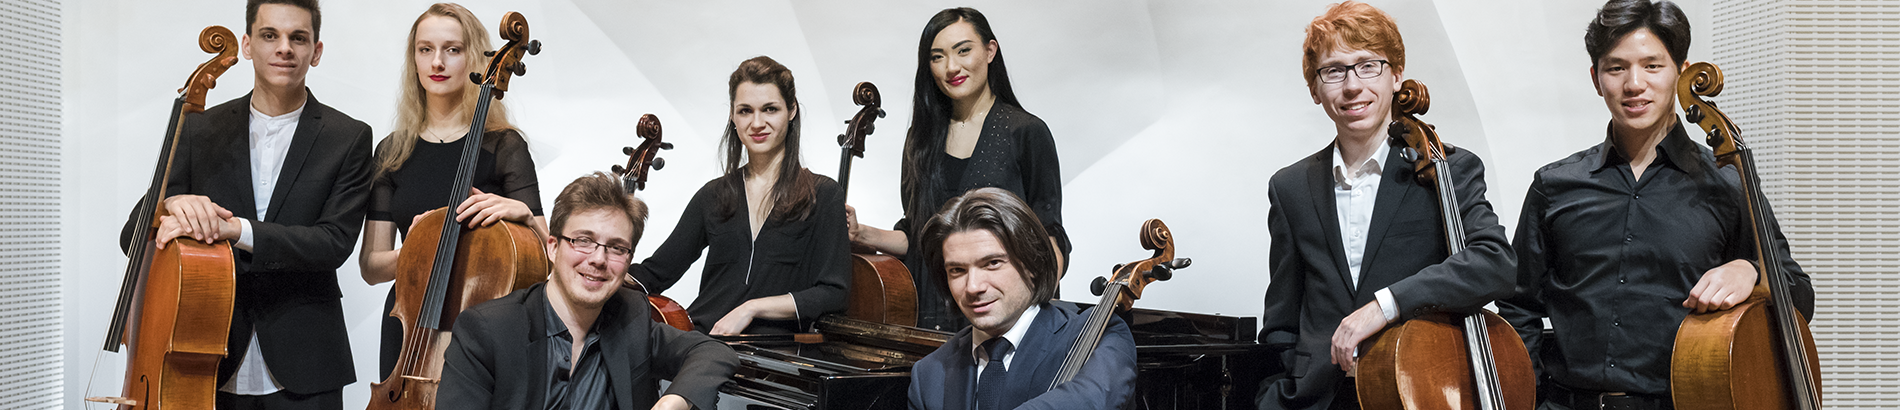 The final concert of laureates (6)—under the direction of Gautier Capuçon